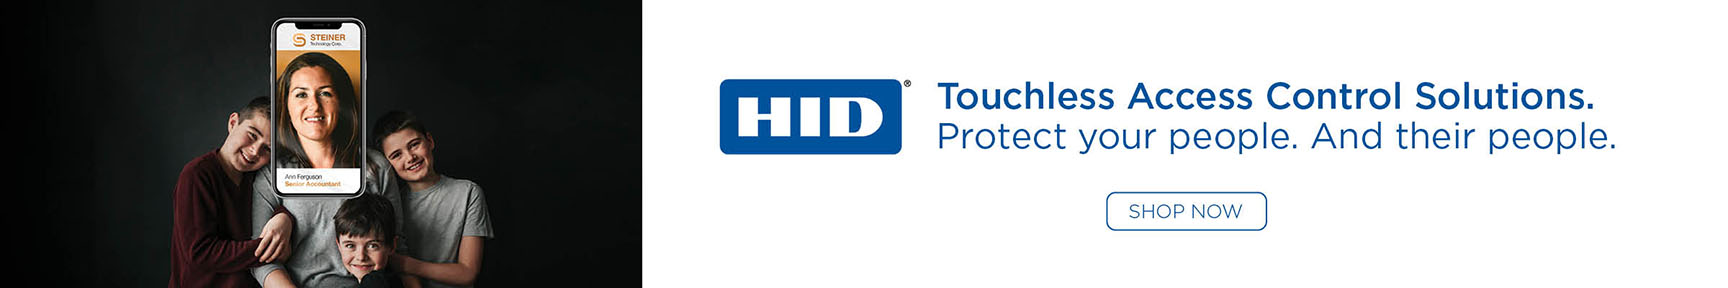 HID Touchless